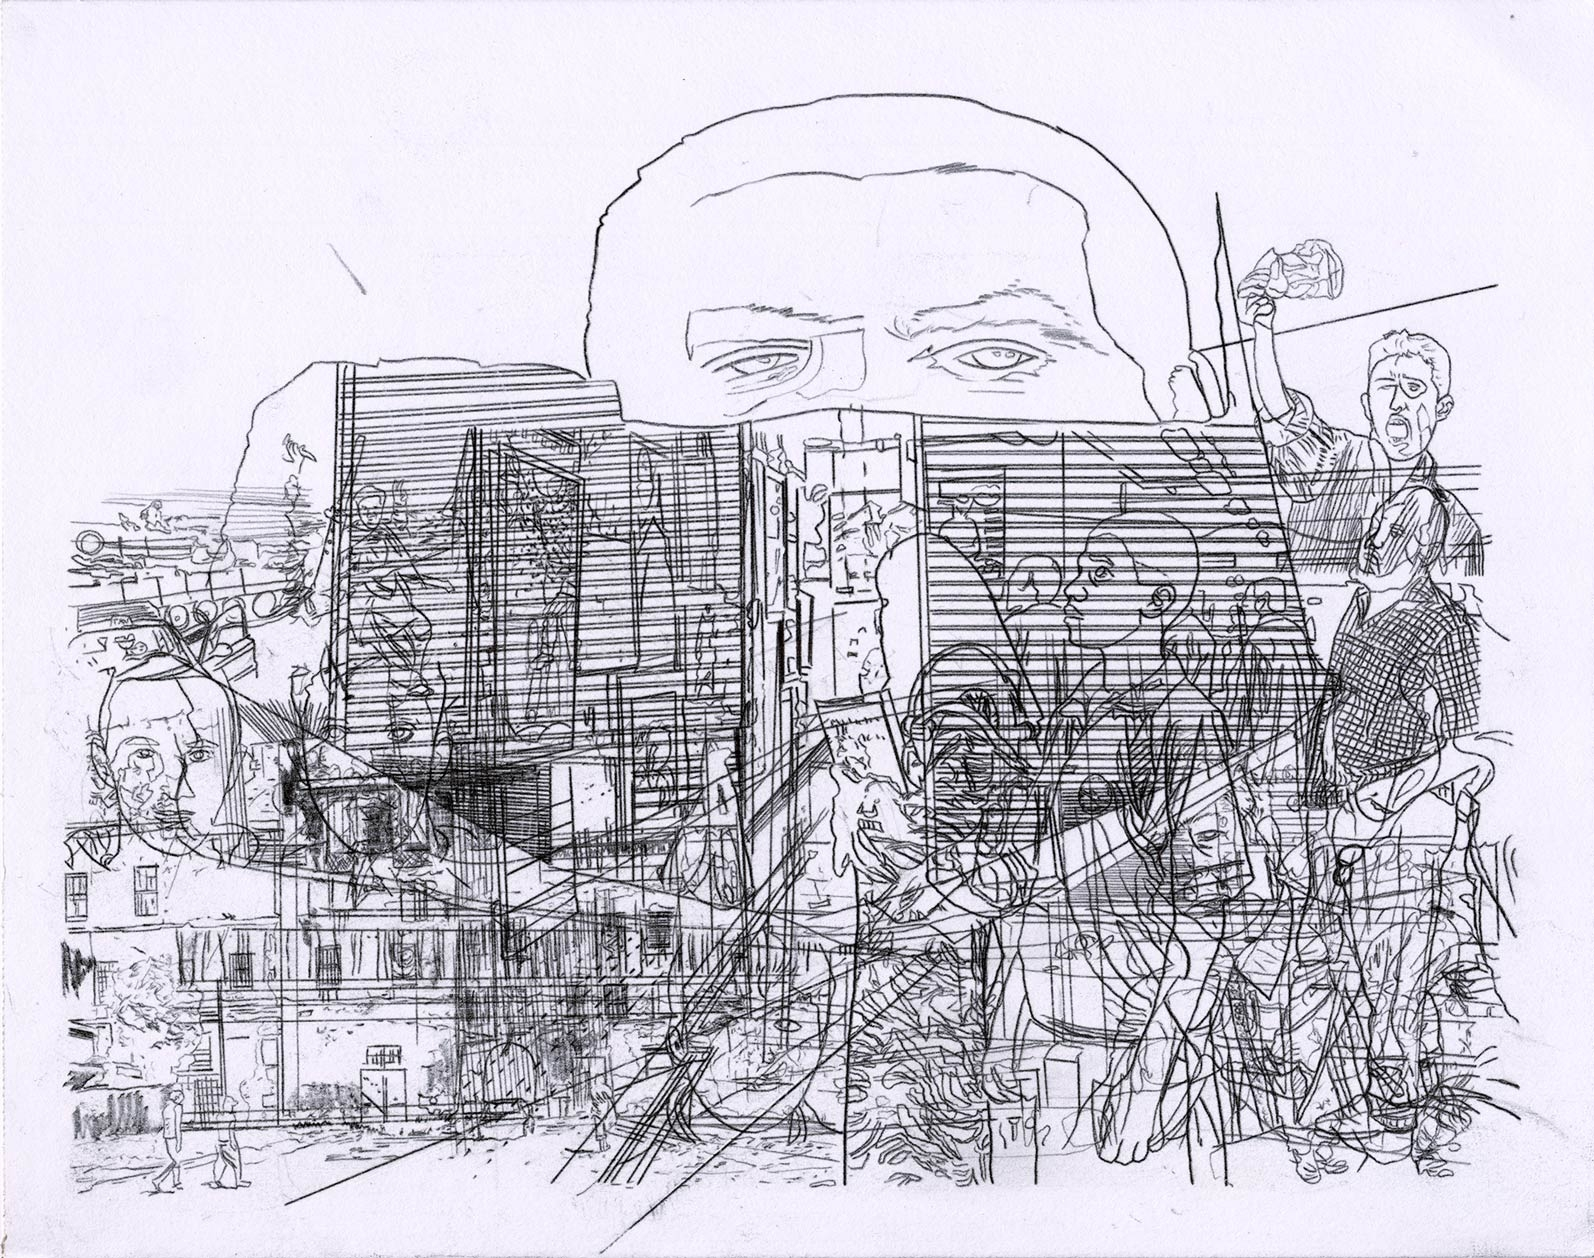 Deborah-Koenker-Visual-Artist-Vancouver_Draw-the-world-paris